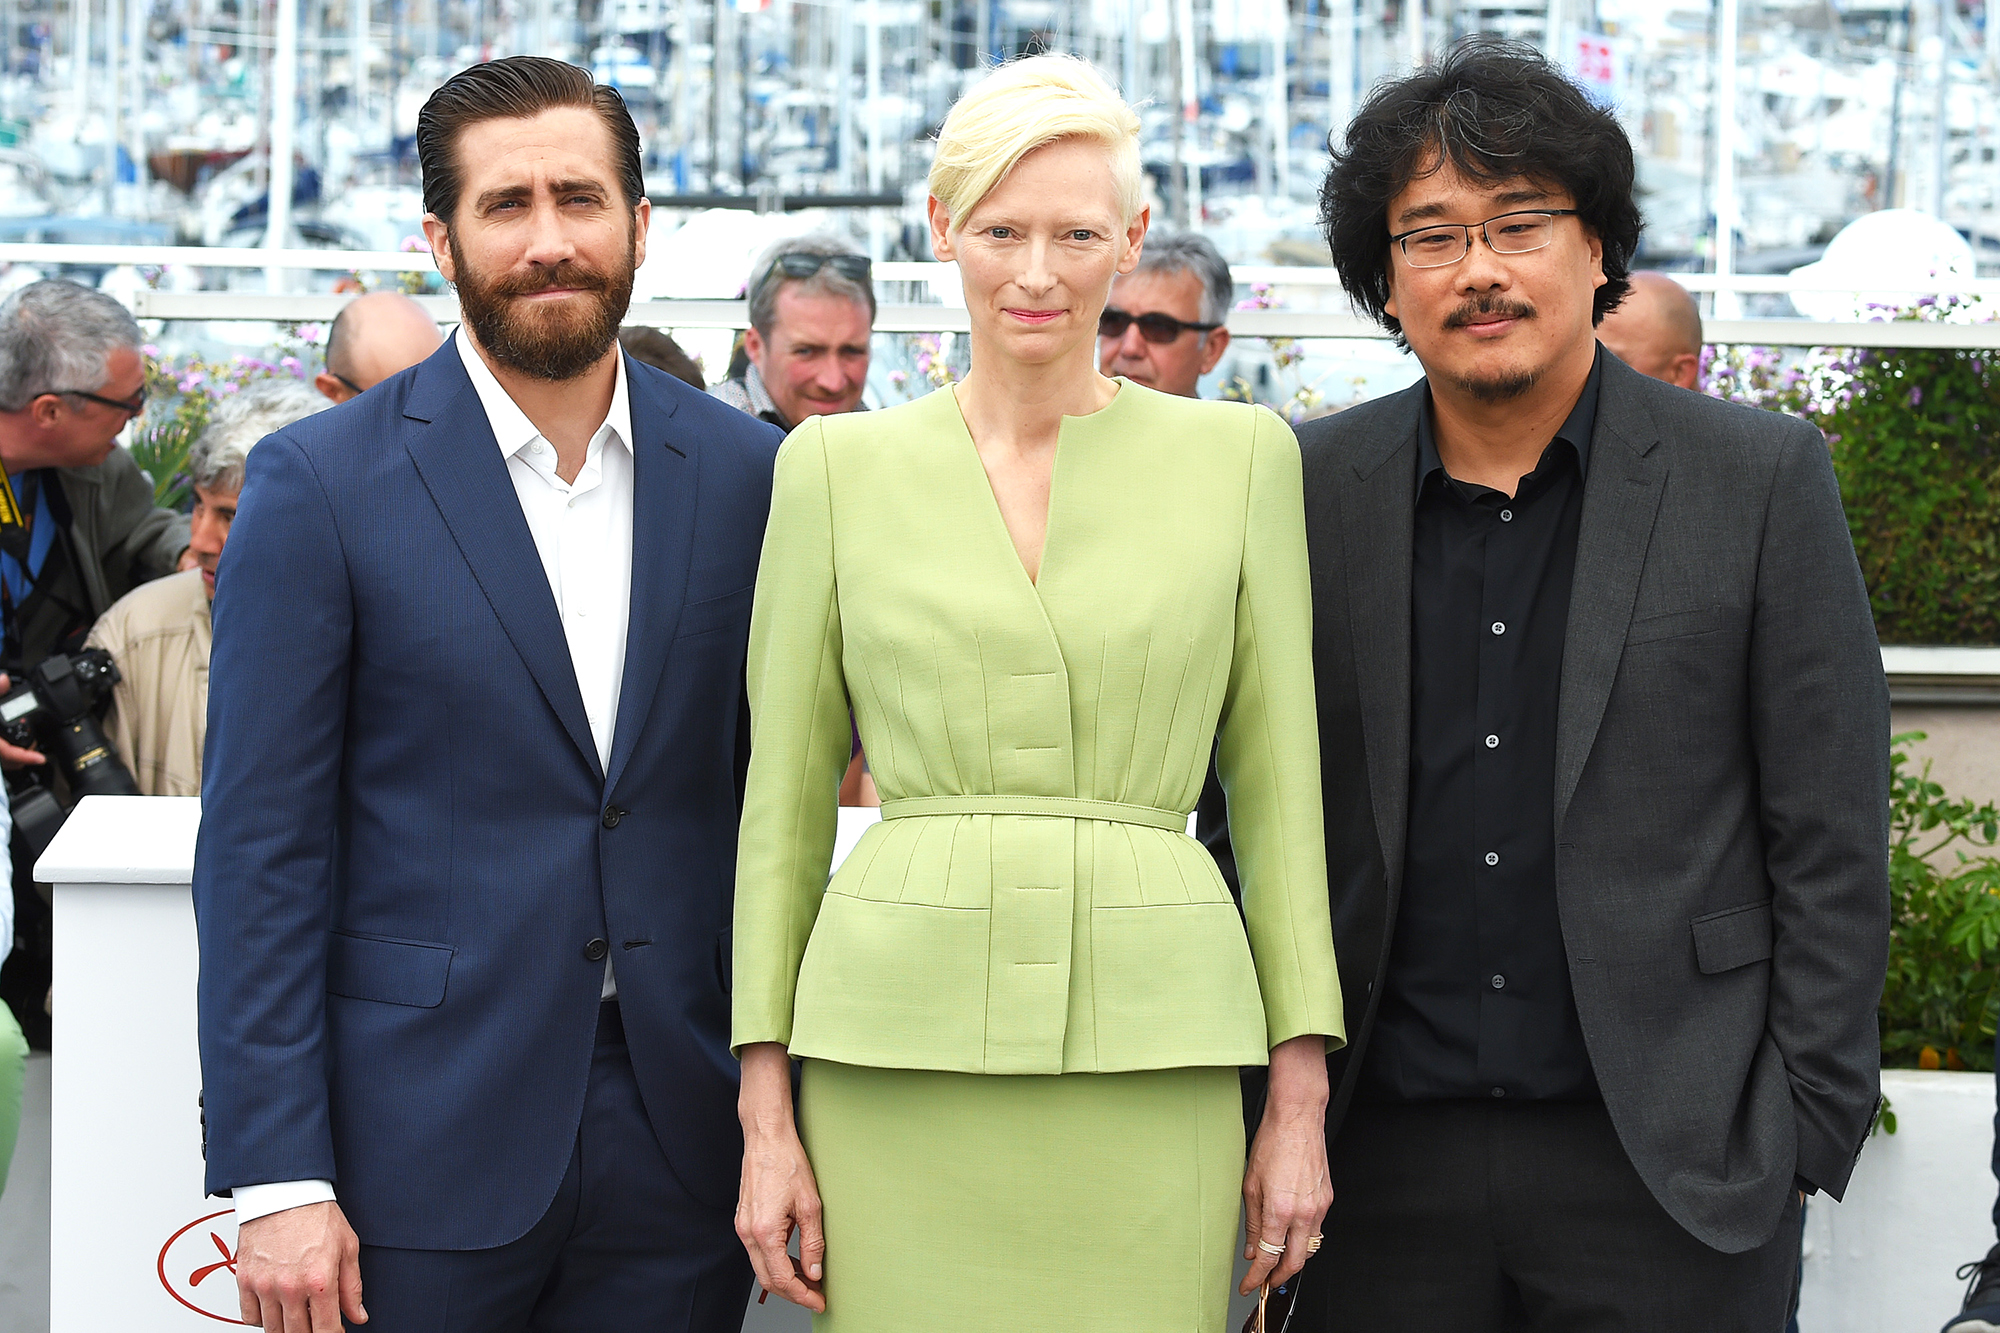 From left: Jake Gyllenhaal, Tilda Swinton and director Bong Joon-Ho in Cannes, France, on May 19, 2017.